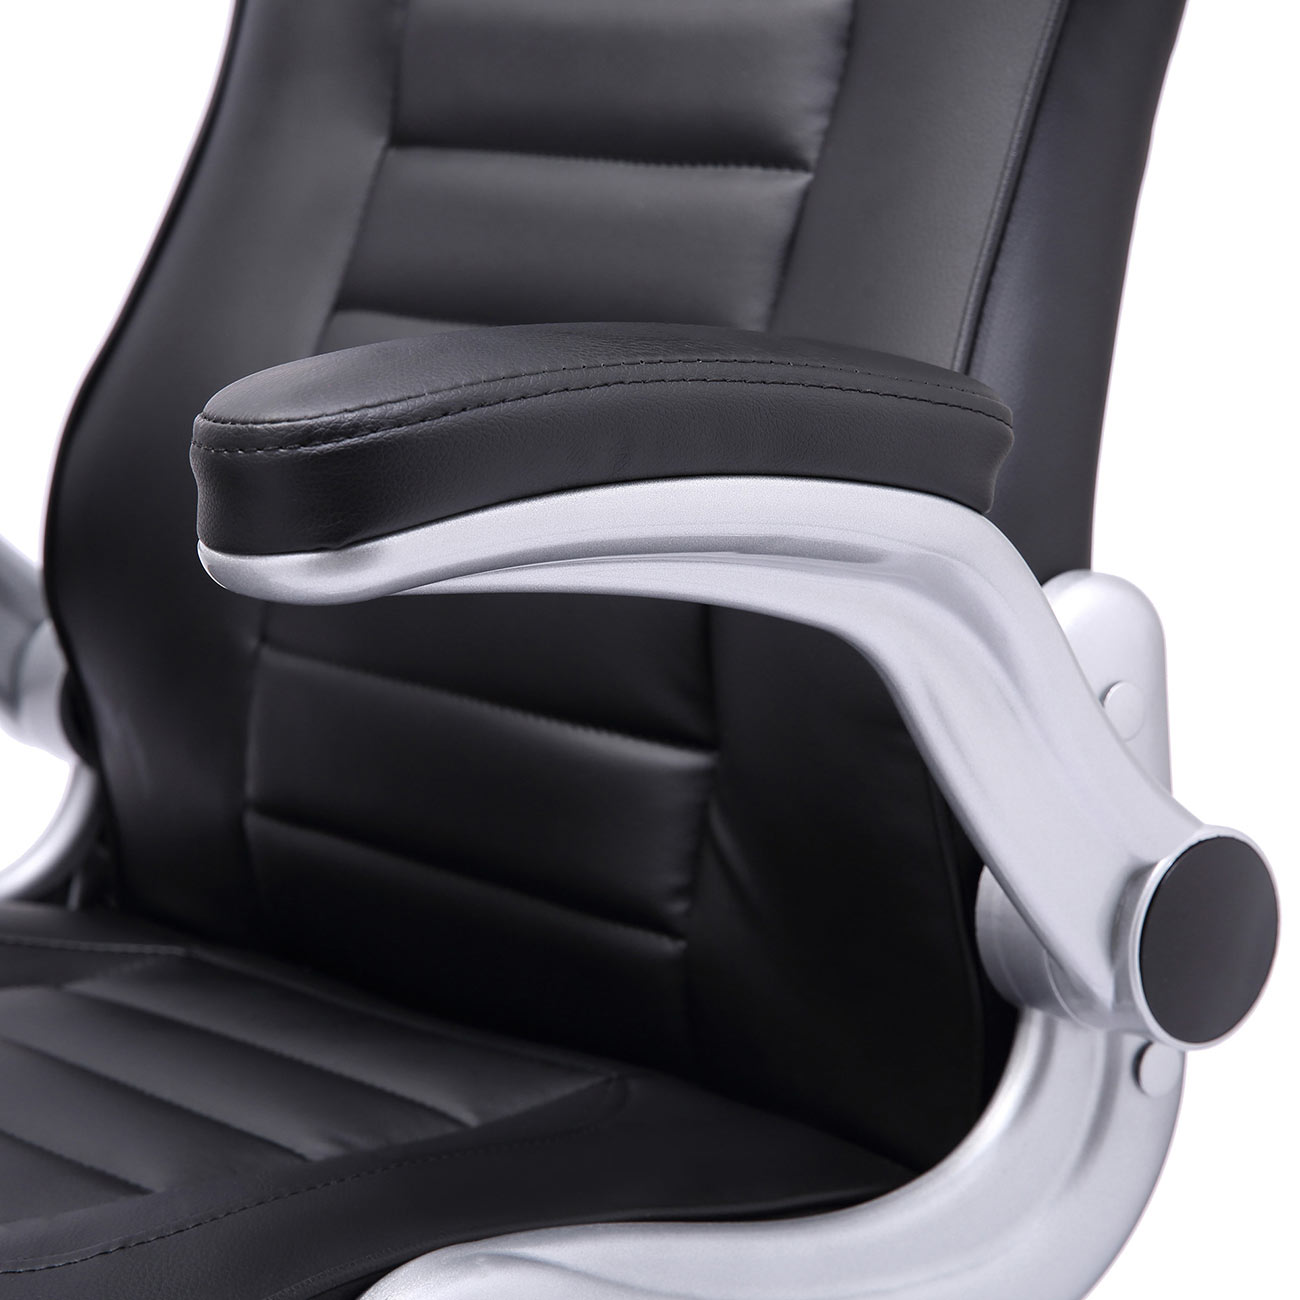 chaise bureau fauteuil si ge racing gamer sport ordinateur accoudoir noir v10 ebay. Black Bedroom Furniture Sets. Home Design Ideas